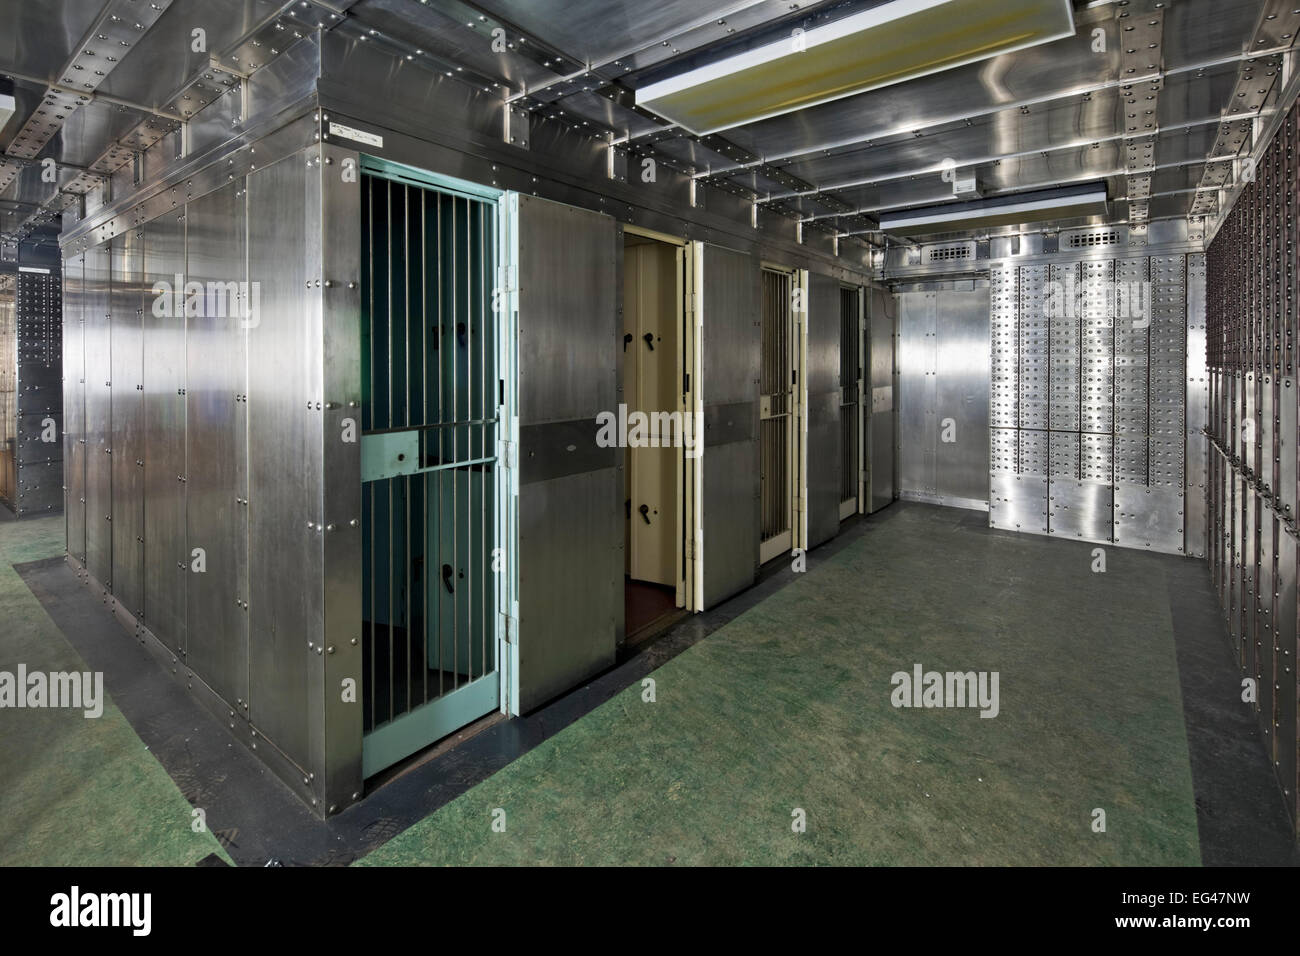 strong-room interior of a disused bank vault - Stock Image